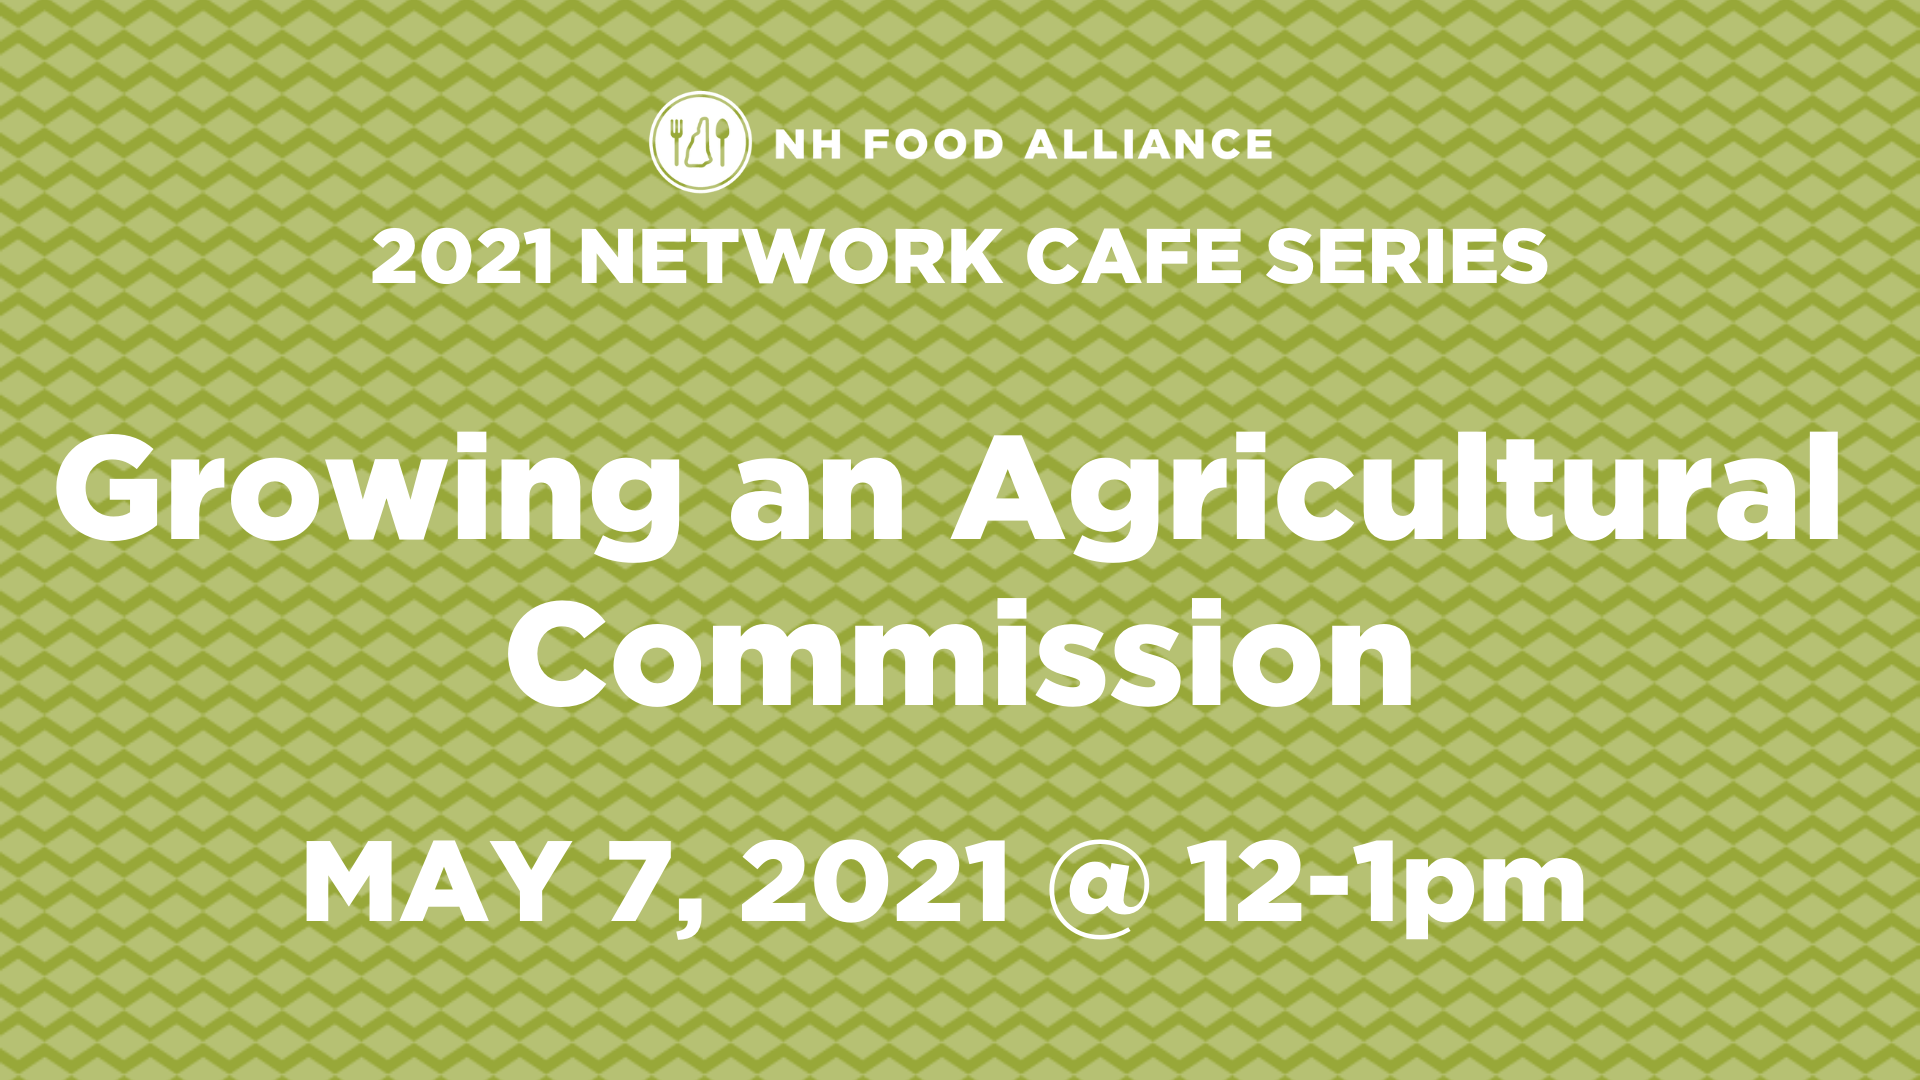 Ag-Commissions-Network-Cafe-May-7-fb-banner.png